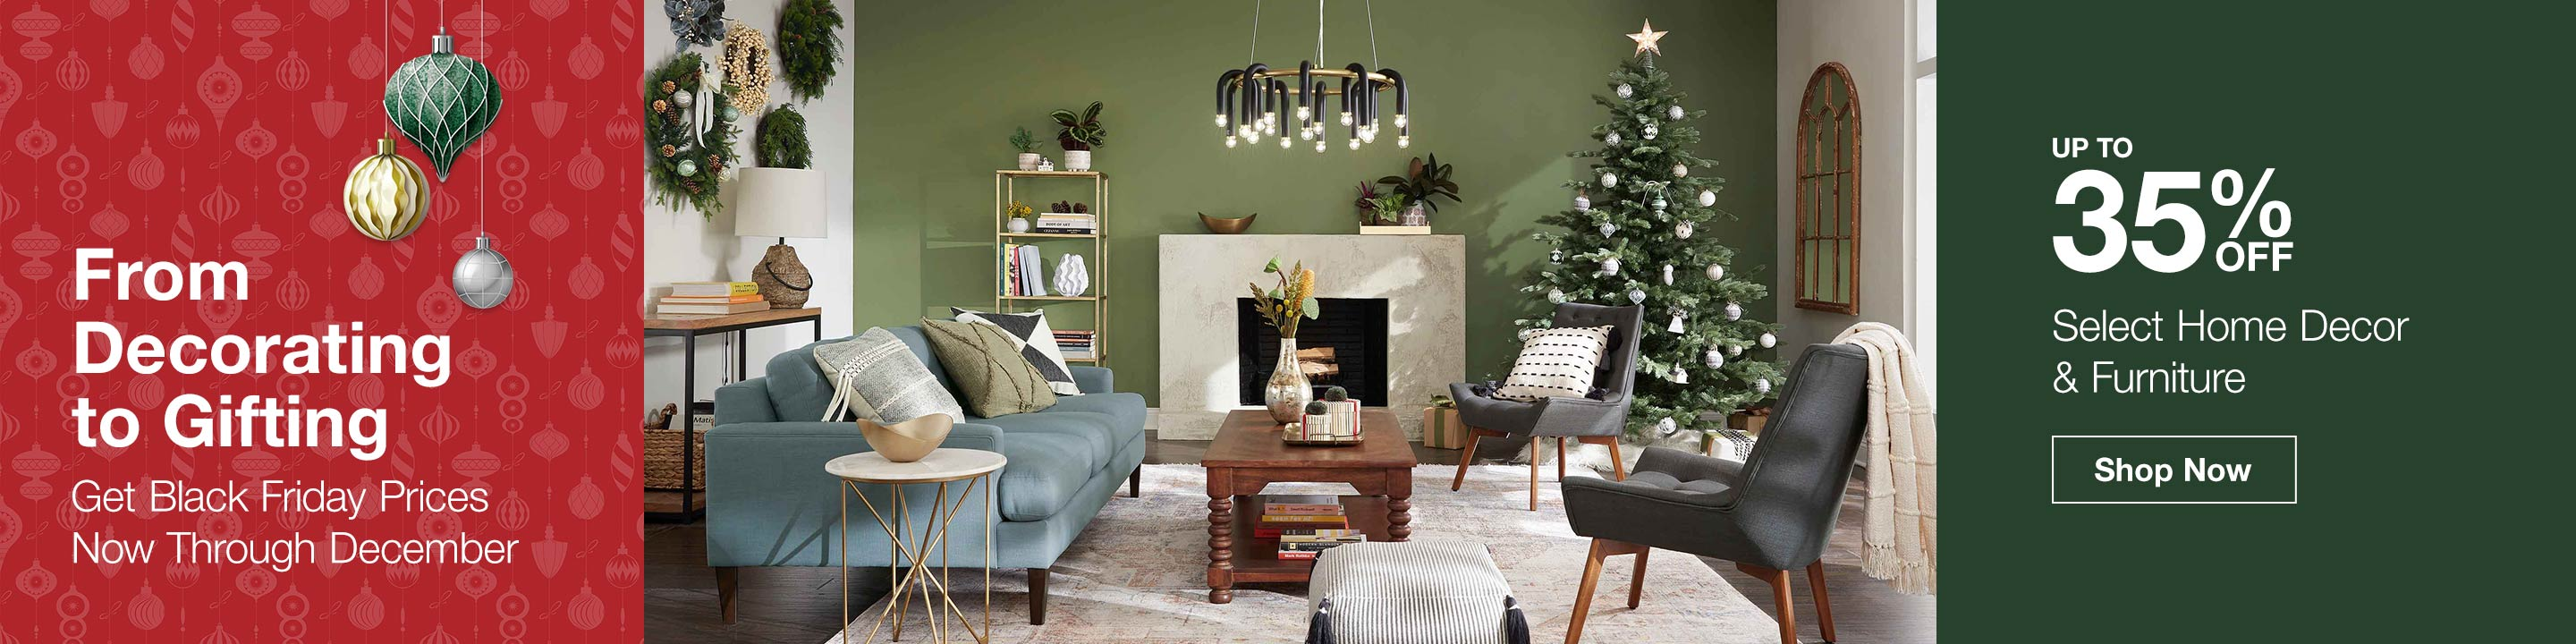 Get Black Friday Prices Now - Up to 35% Off Select Home Decor & Furniture